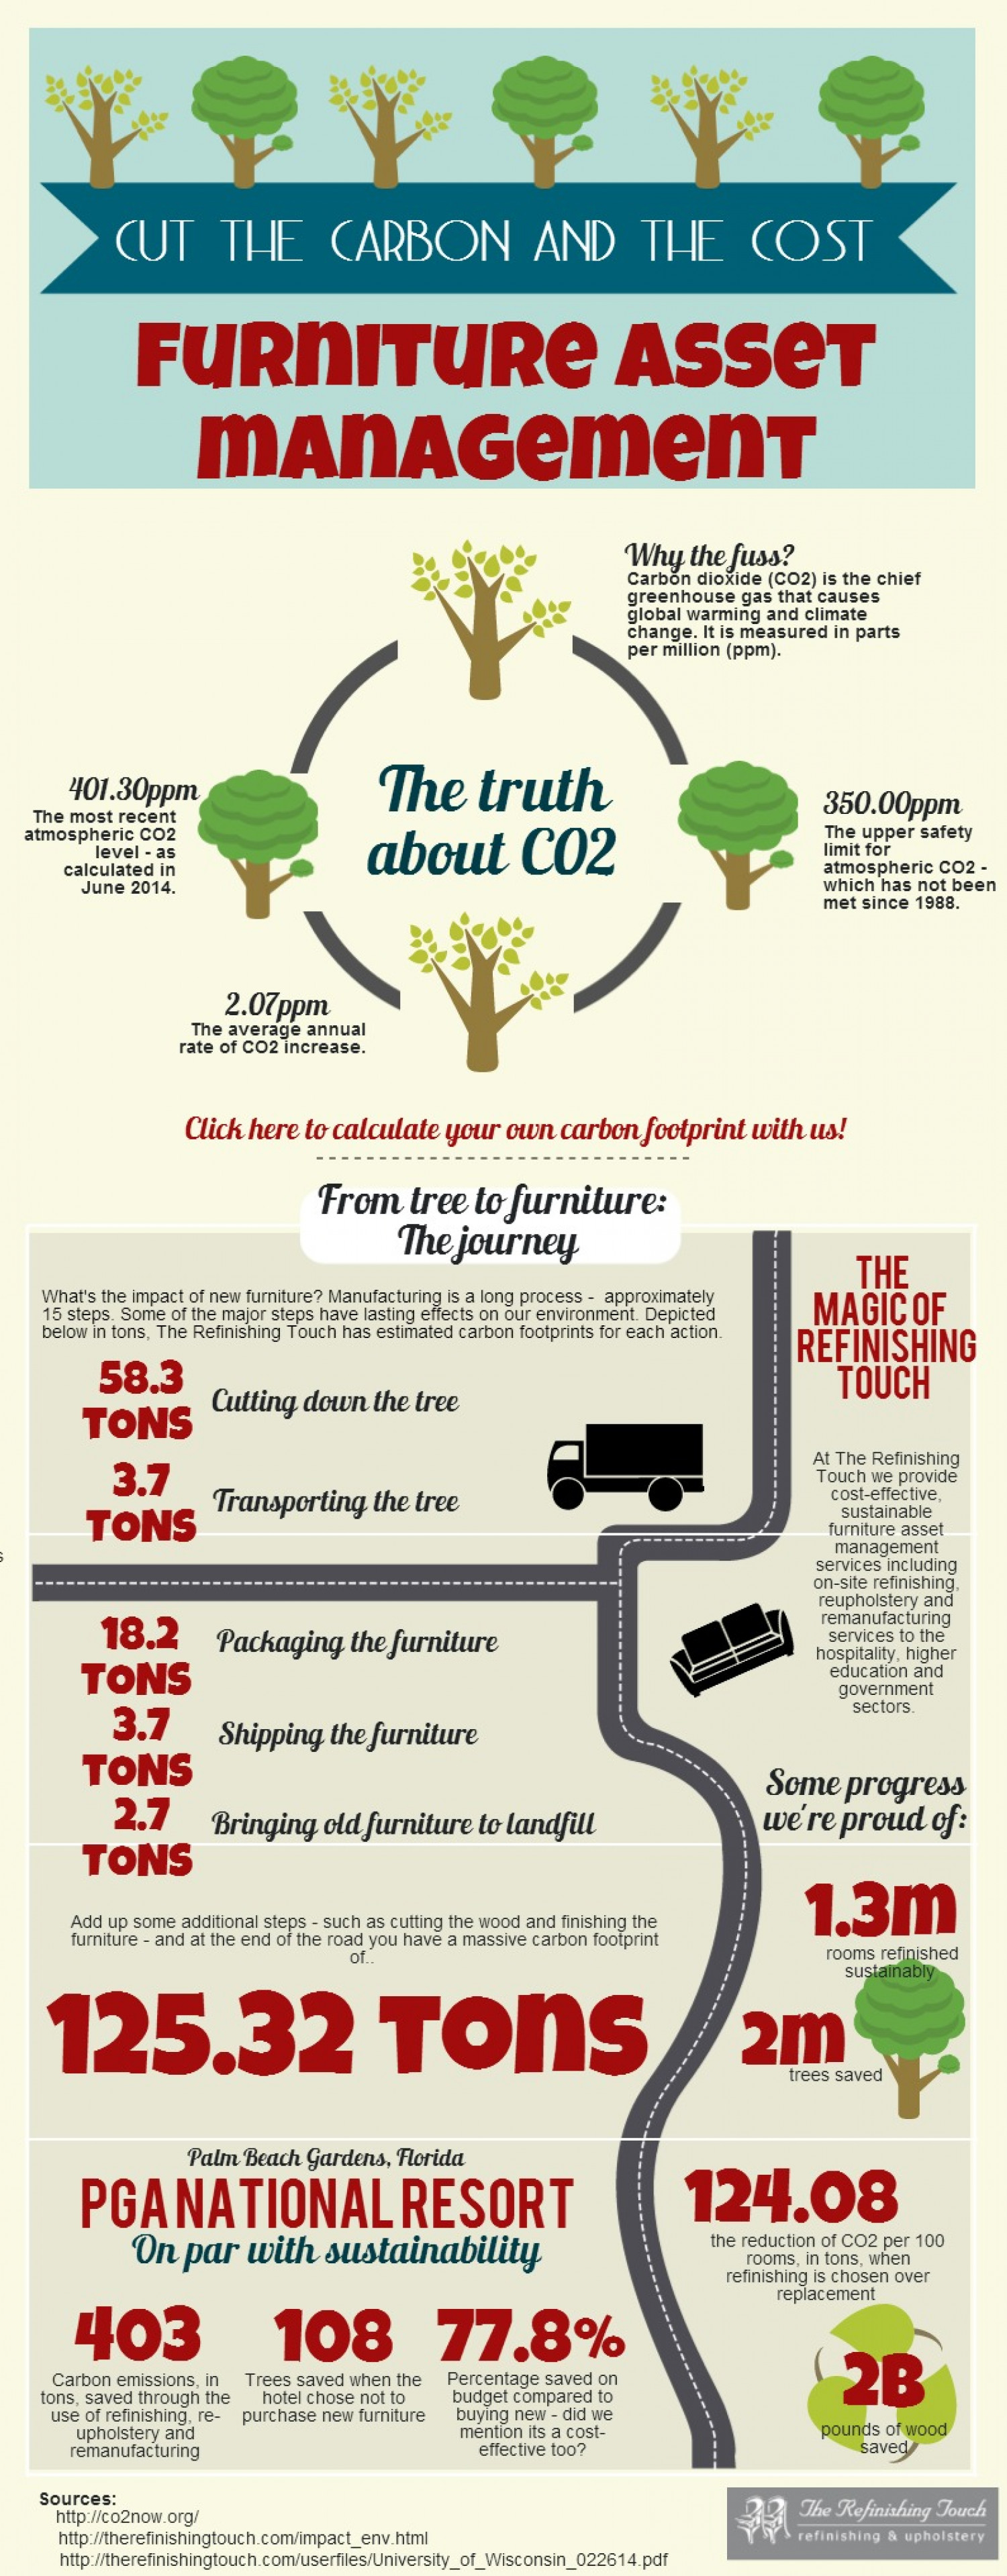 Furniture asset management: Cut the carbon and the cost Infographic